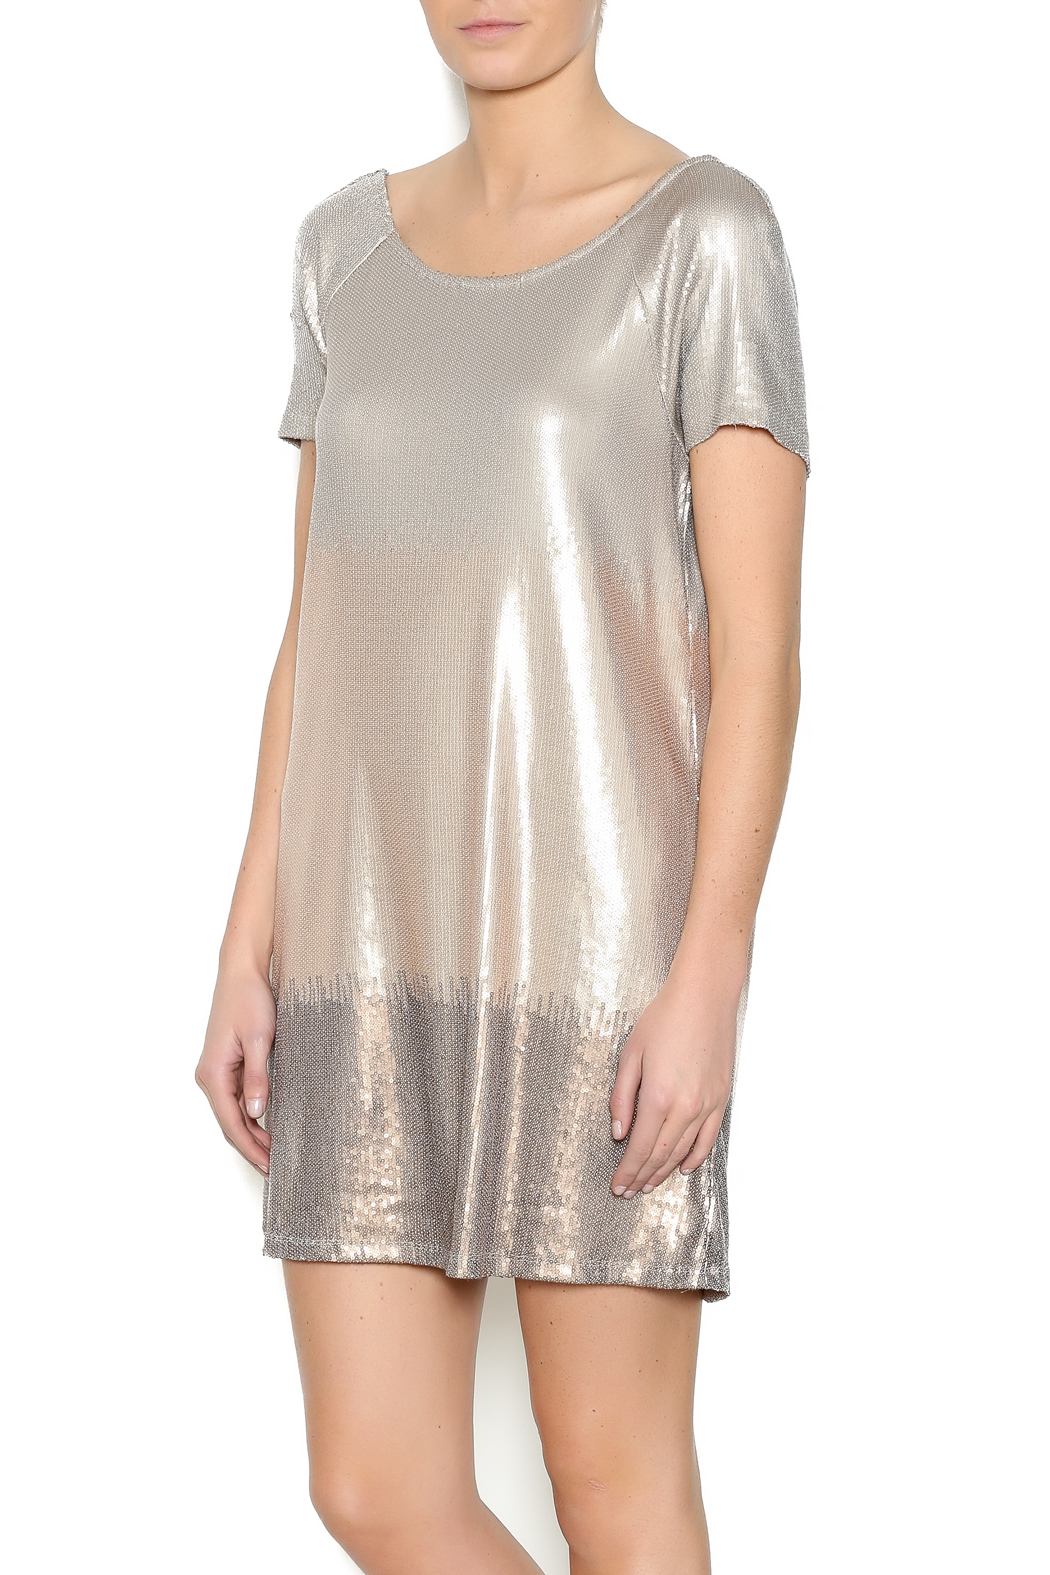 Free People Drenched In Sequins Dress from Kansas by Anima Bella ...